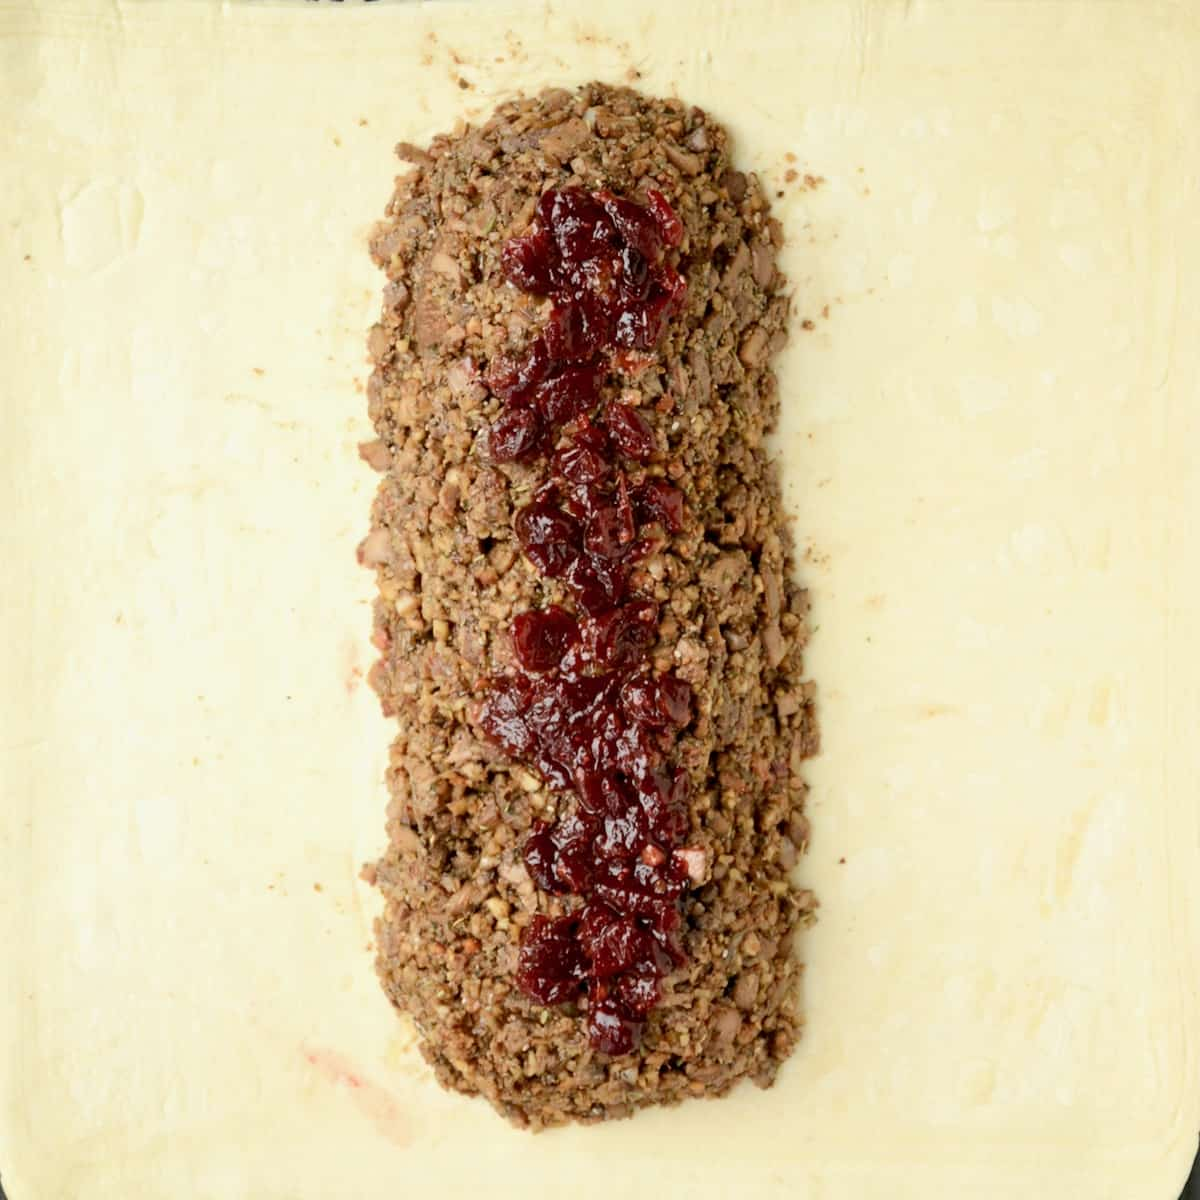 The mushroom filling is topped with a few spoonfuls of cranberry sauce for a final touch of flavour.